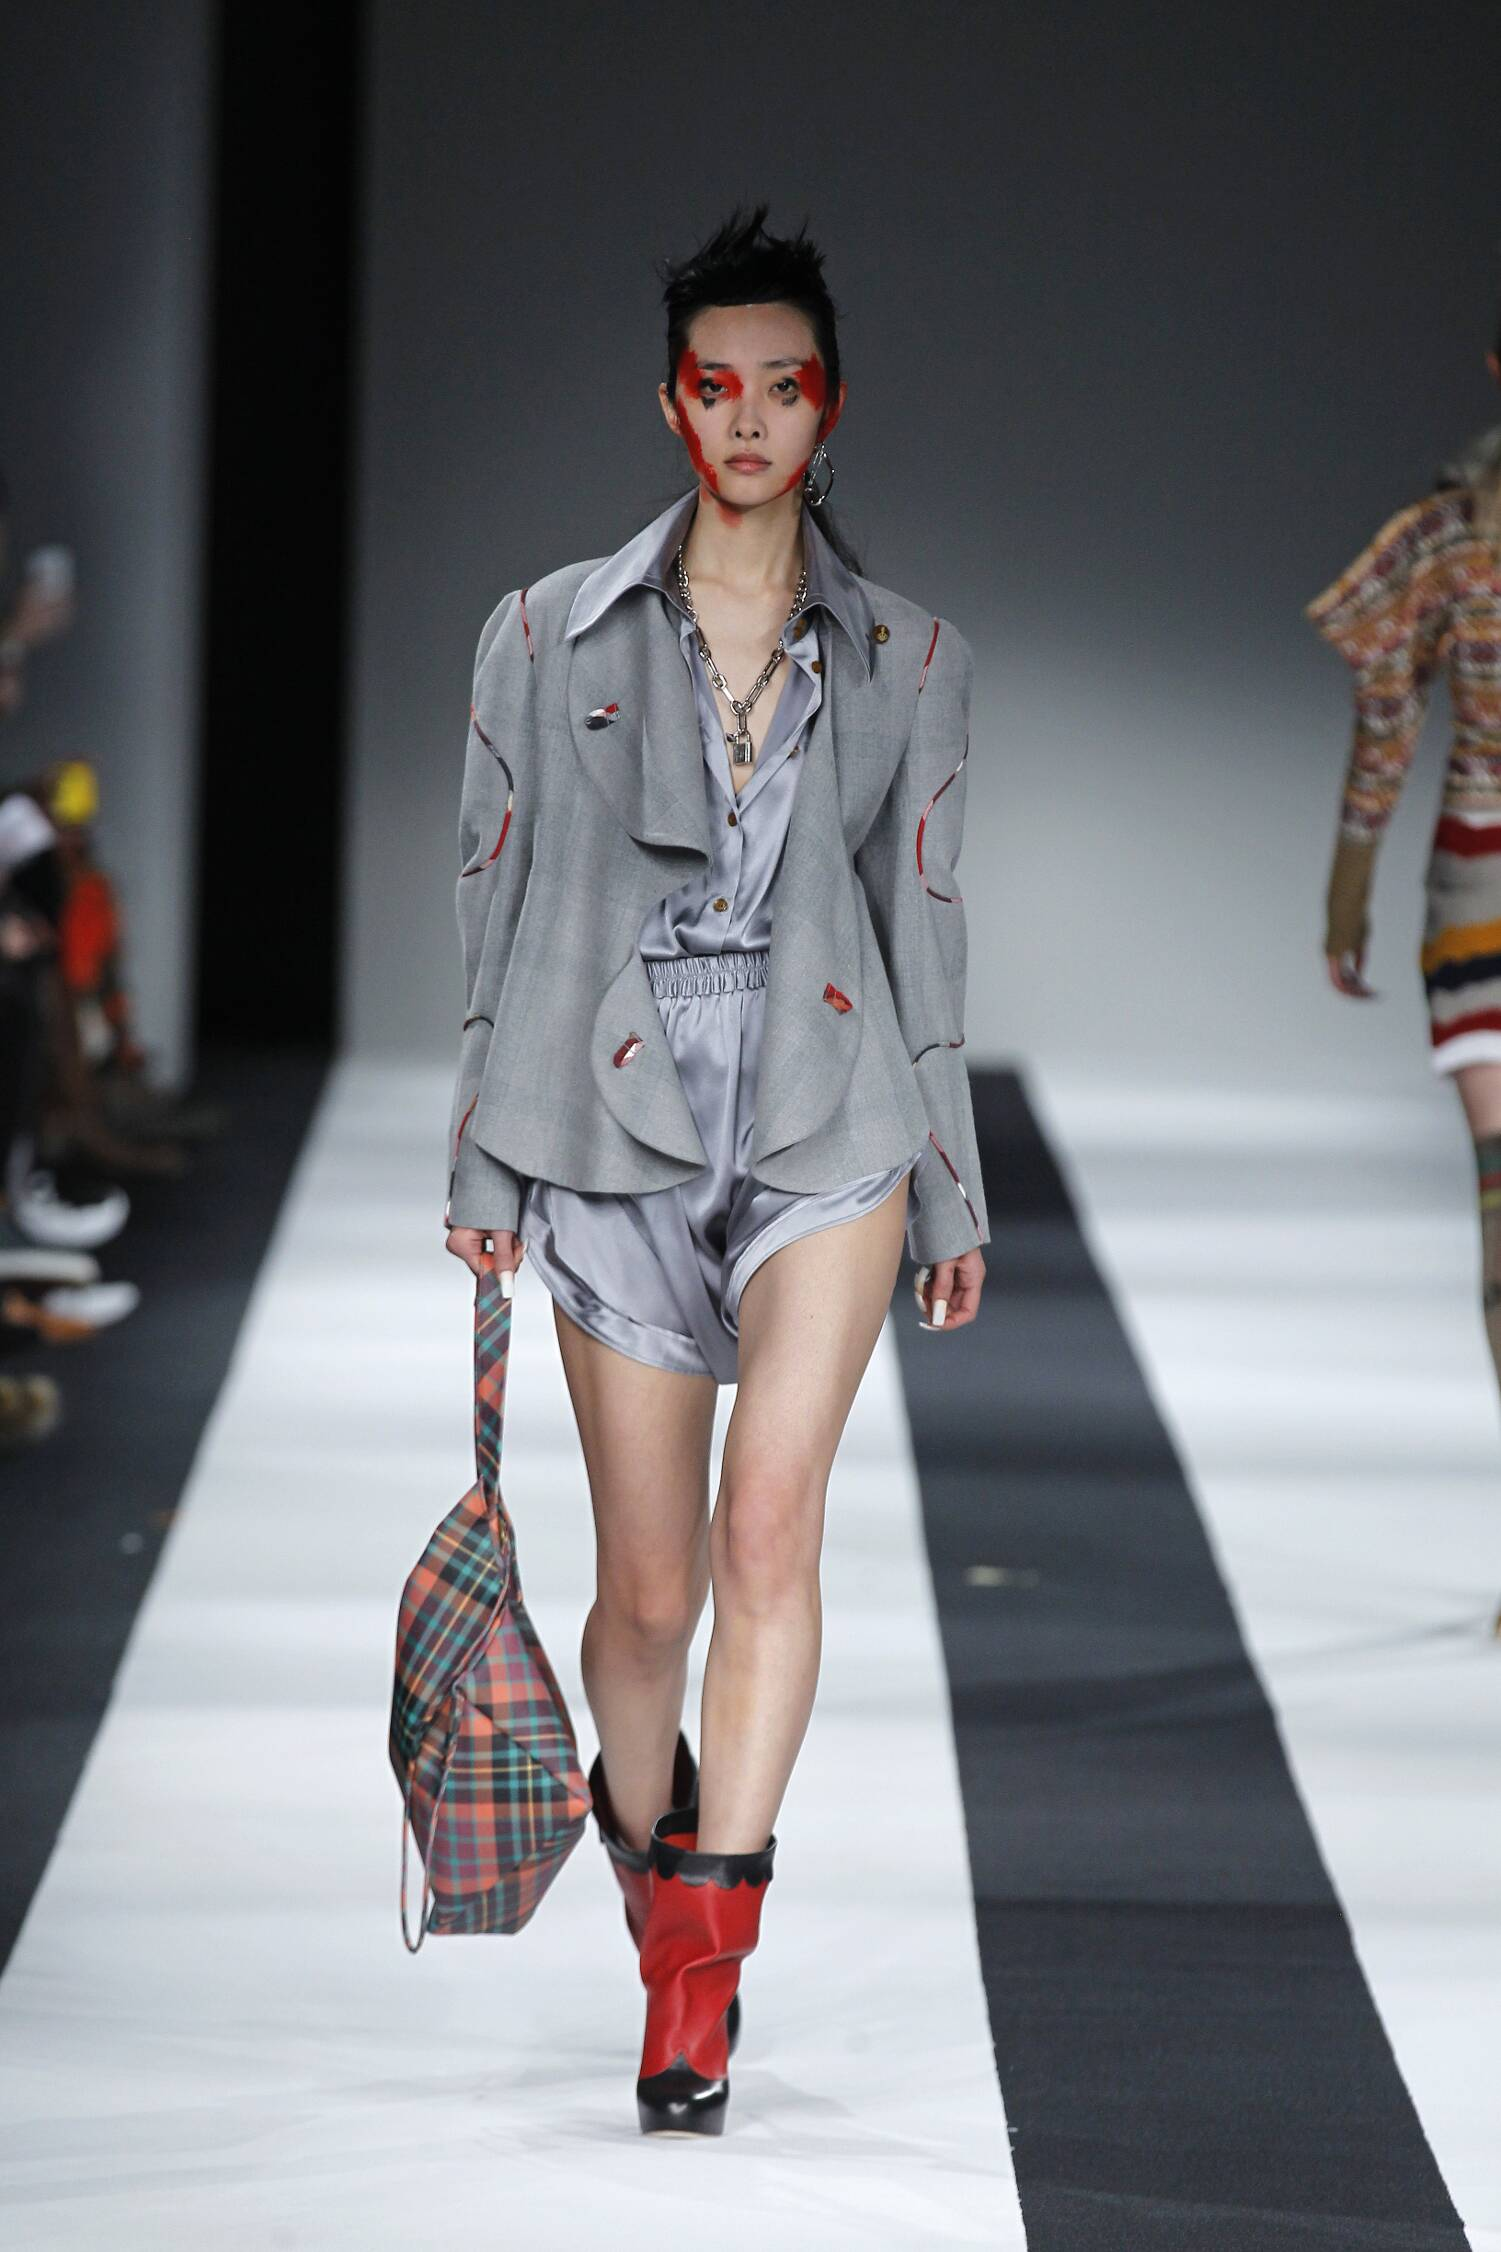 Vivienne Westwood Red Label Fall Winter 2015 16 Womenswear Collection London Fashion Week Fashion Show